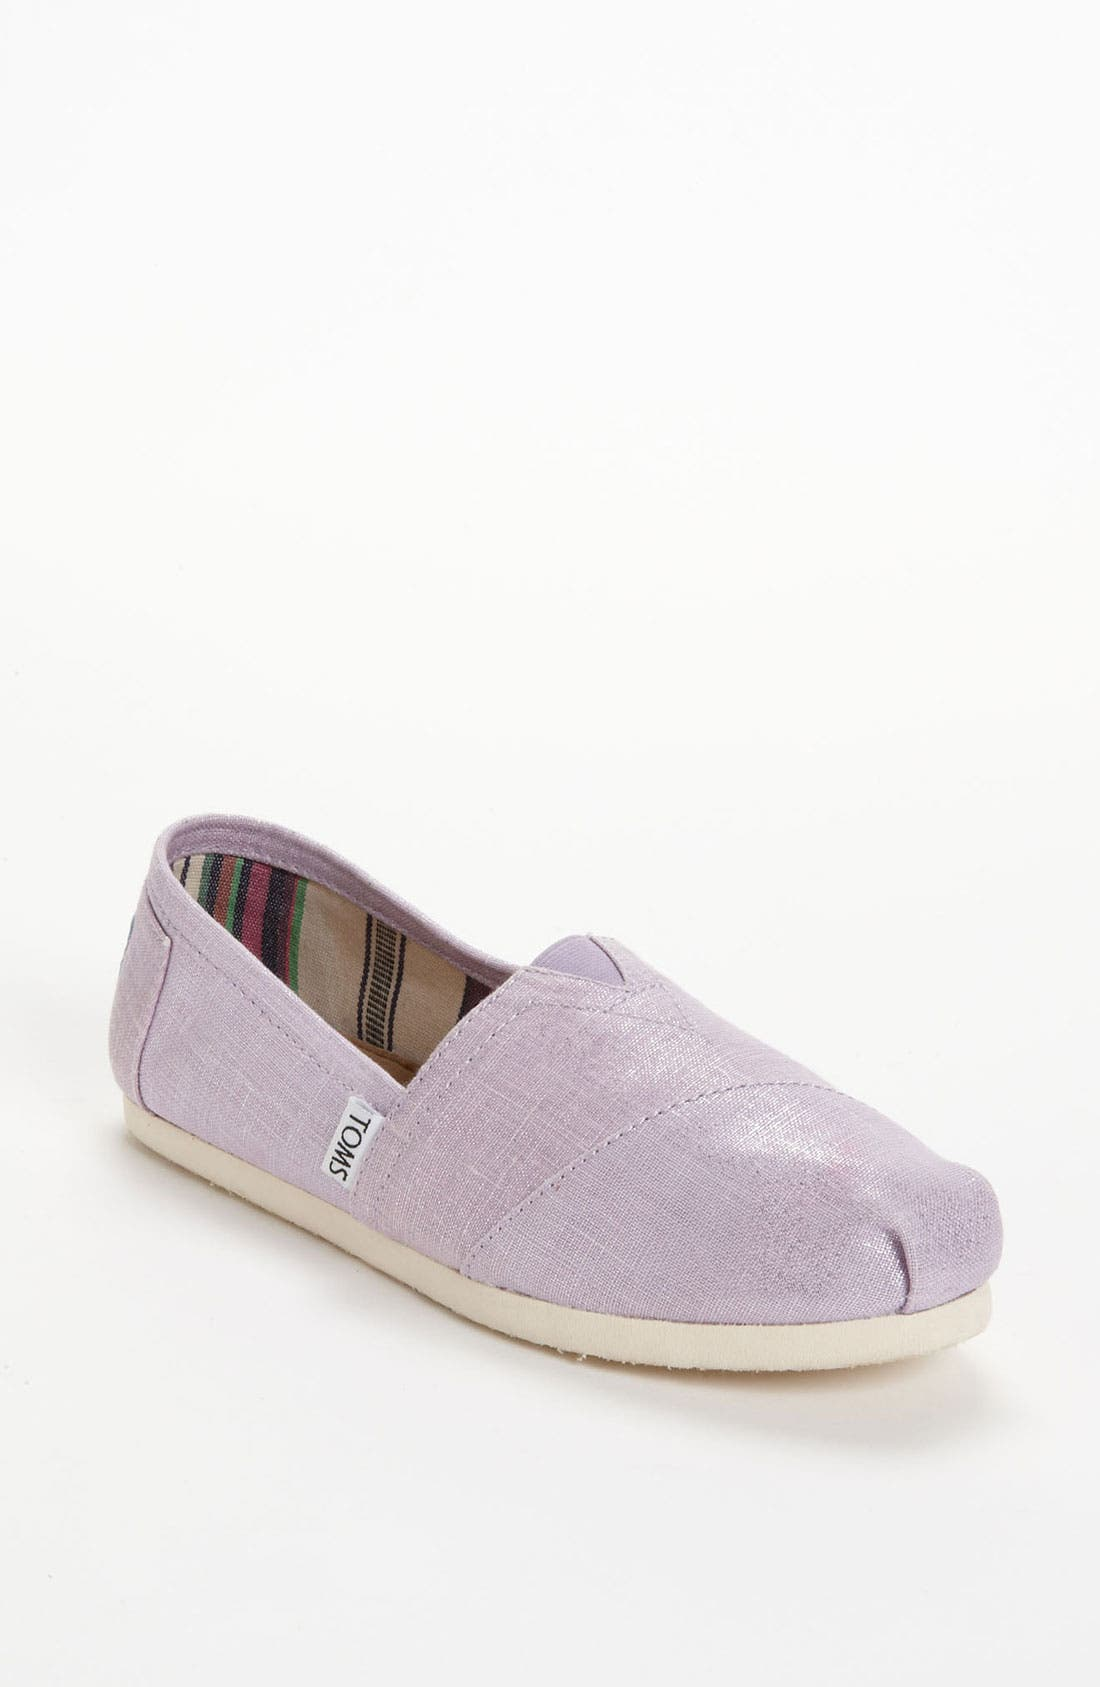 Alternate Image 1 Selected - TOMS 'Classic' Metallic Slip-On (Women)